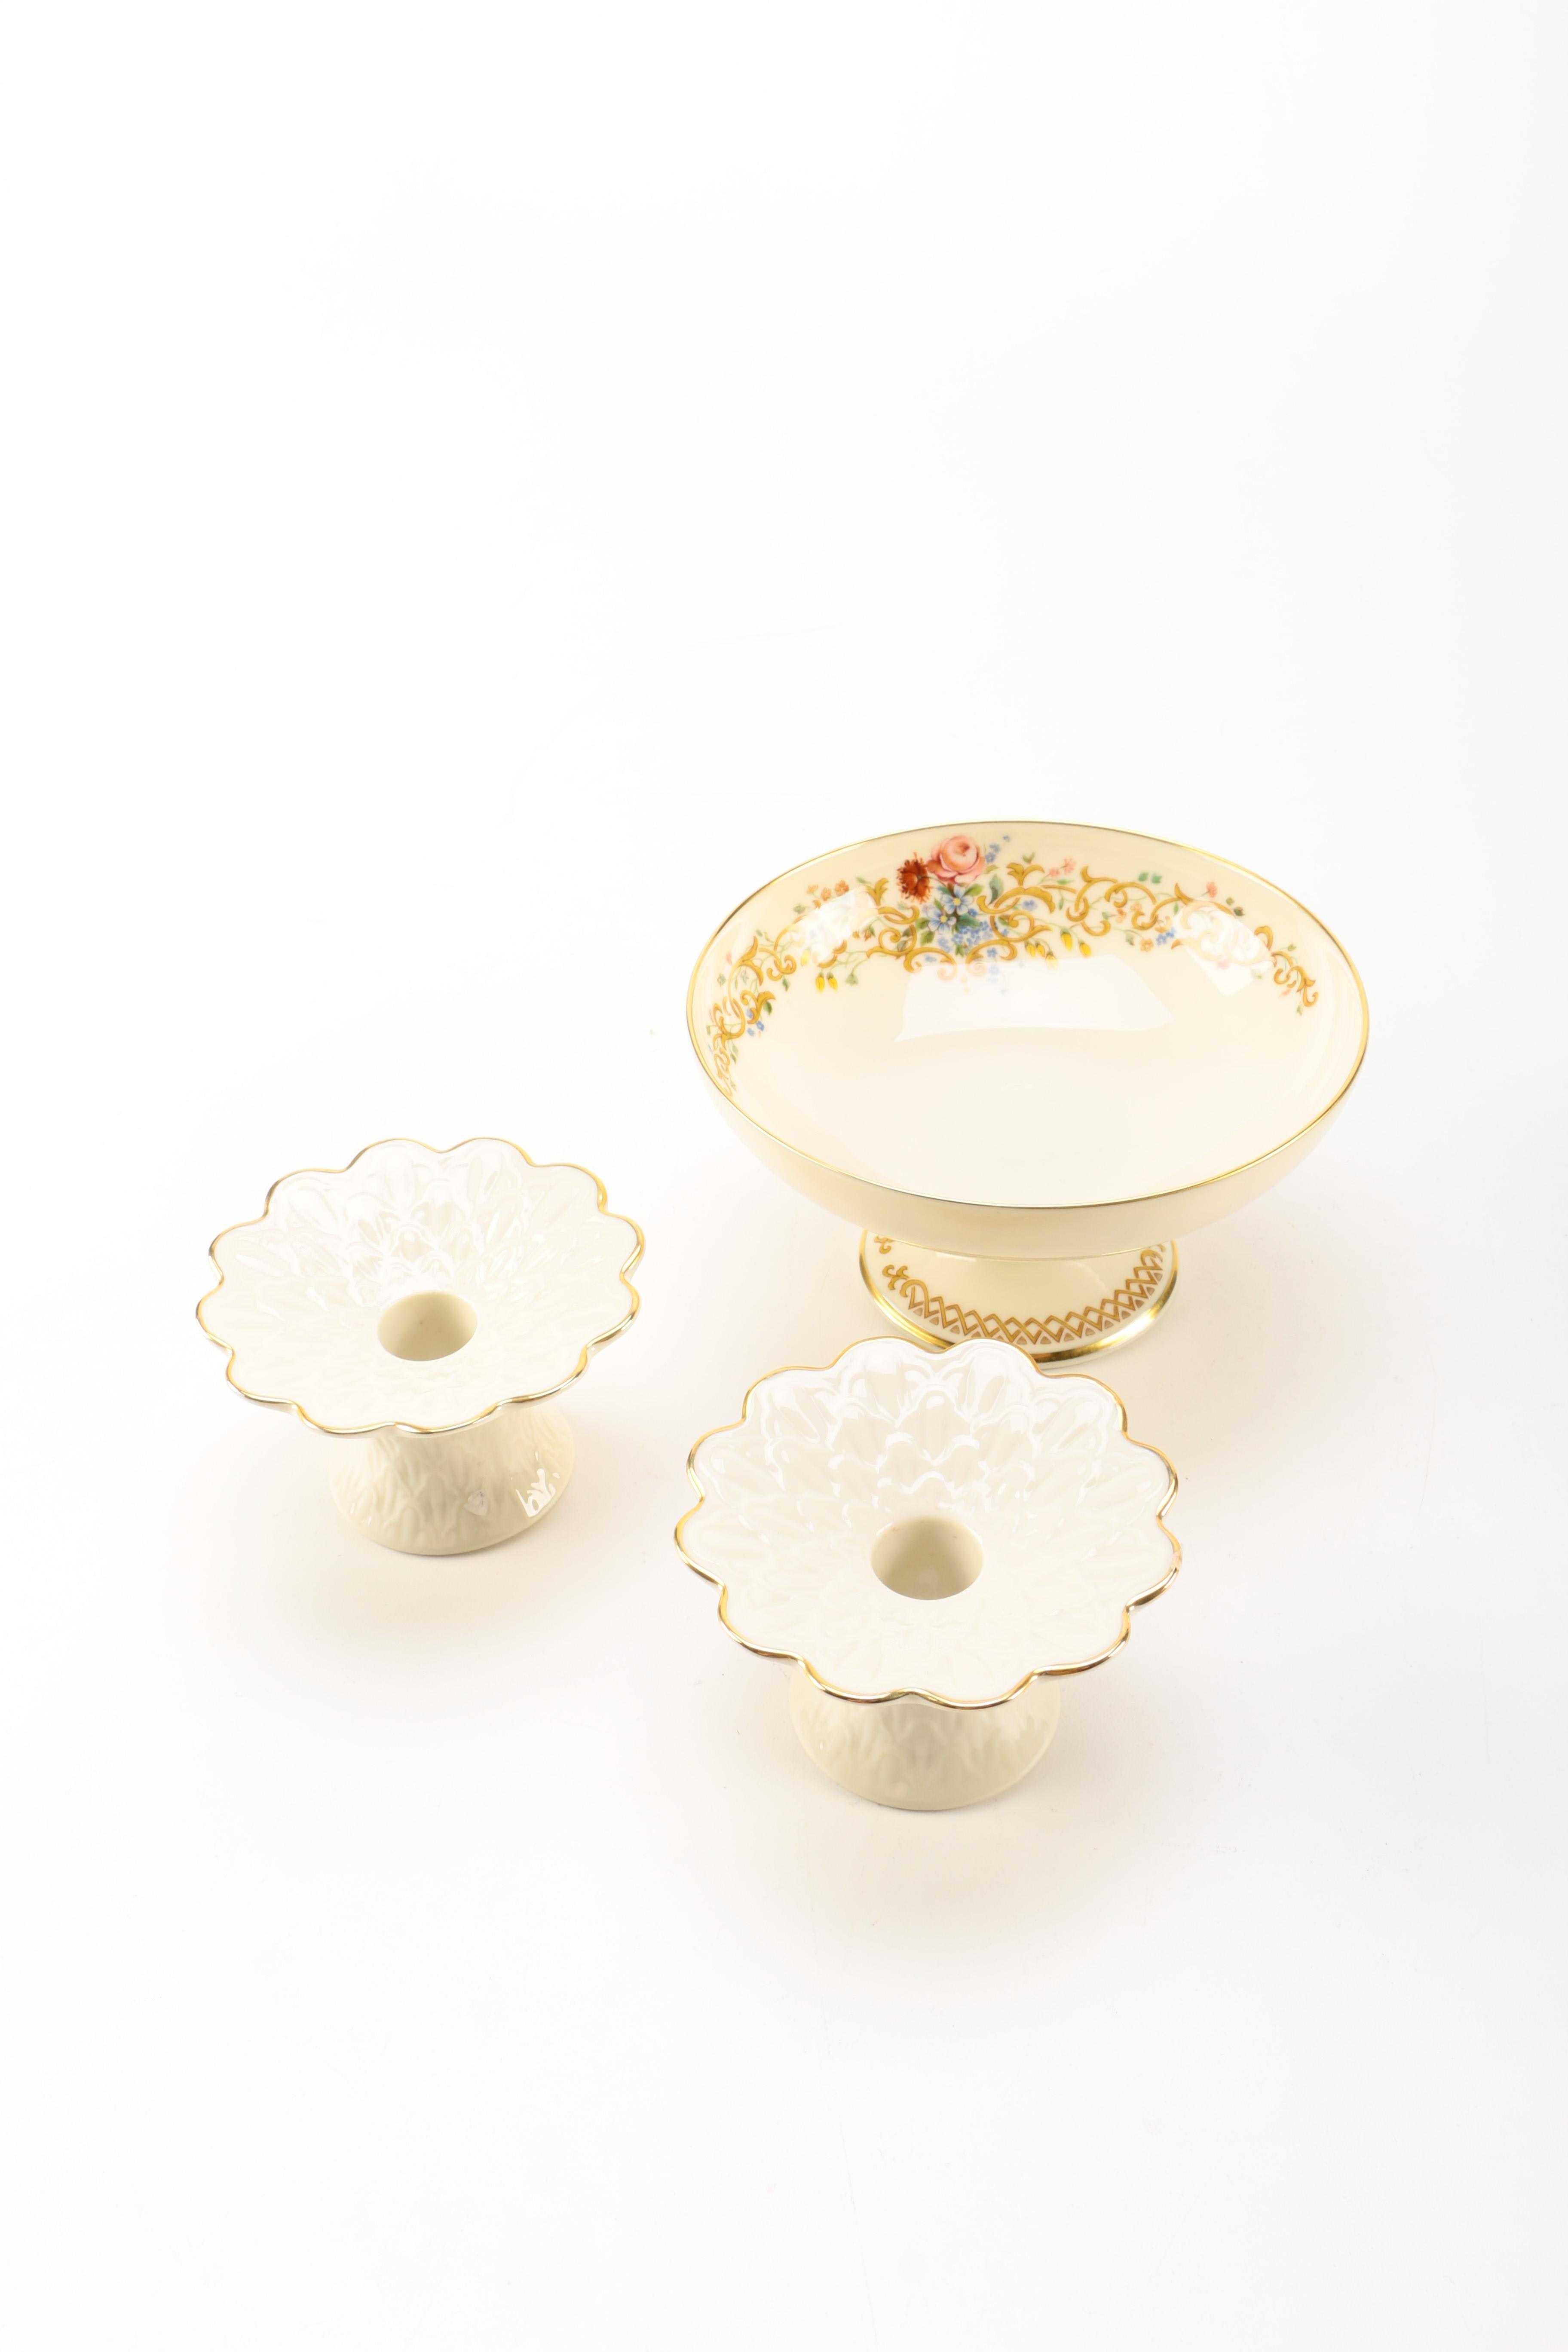 Lenox Pedestal Bowl and Candle Holders